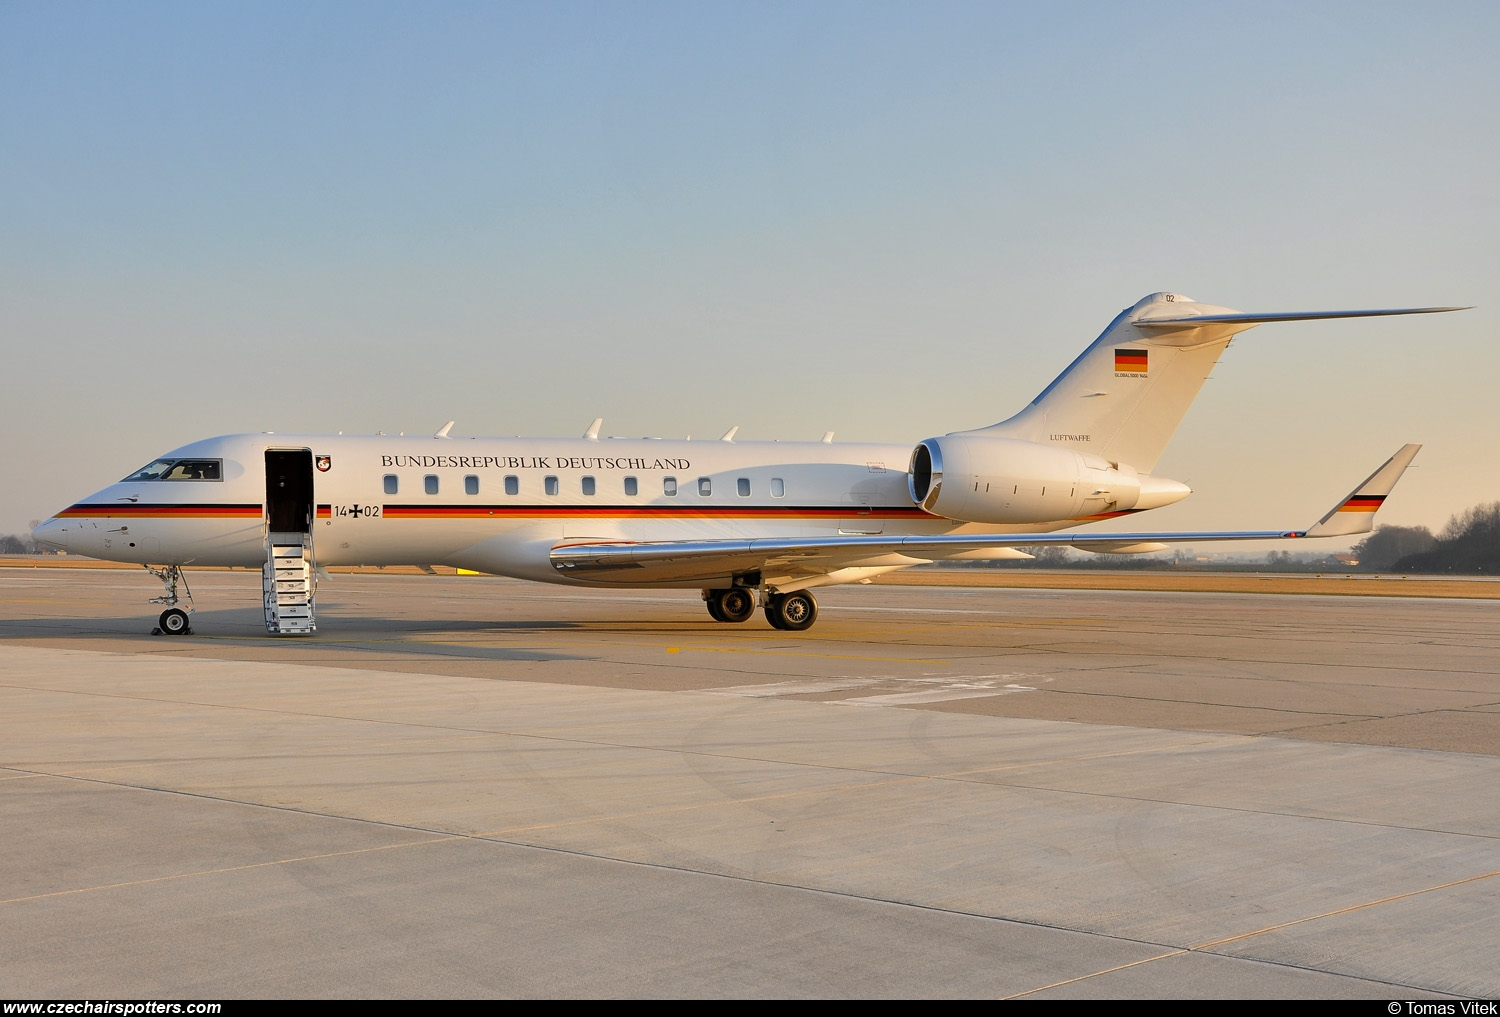 Germany - Air Force – Bombardier Global 5000 14+02